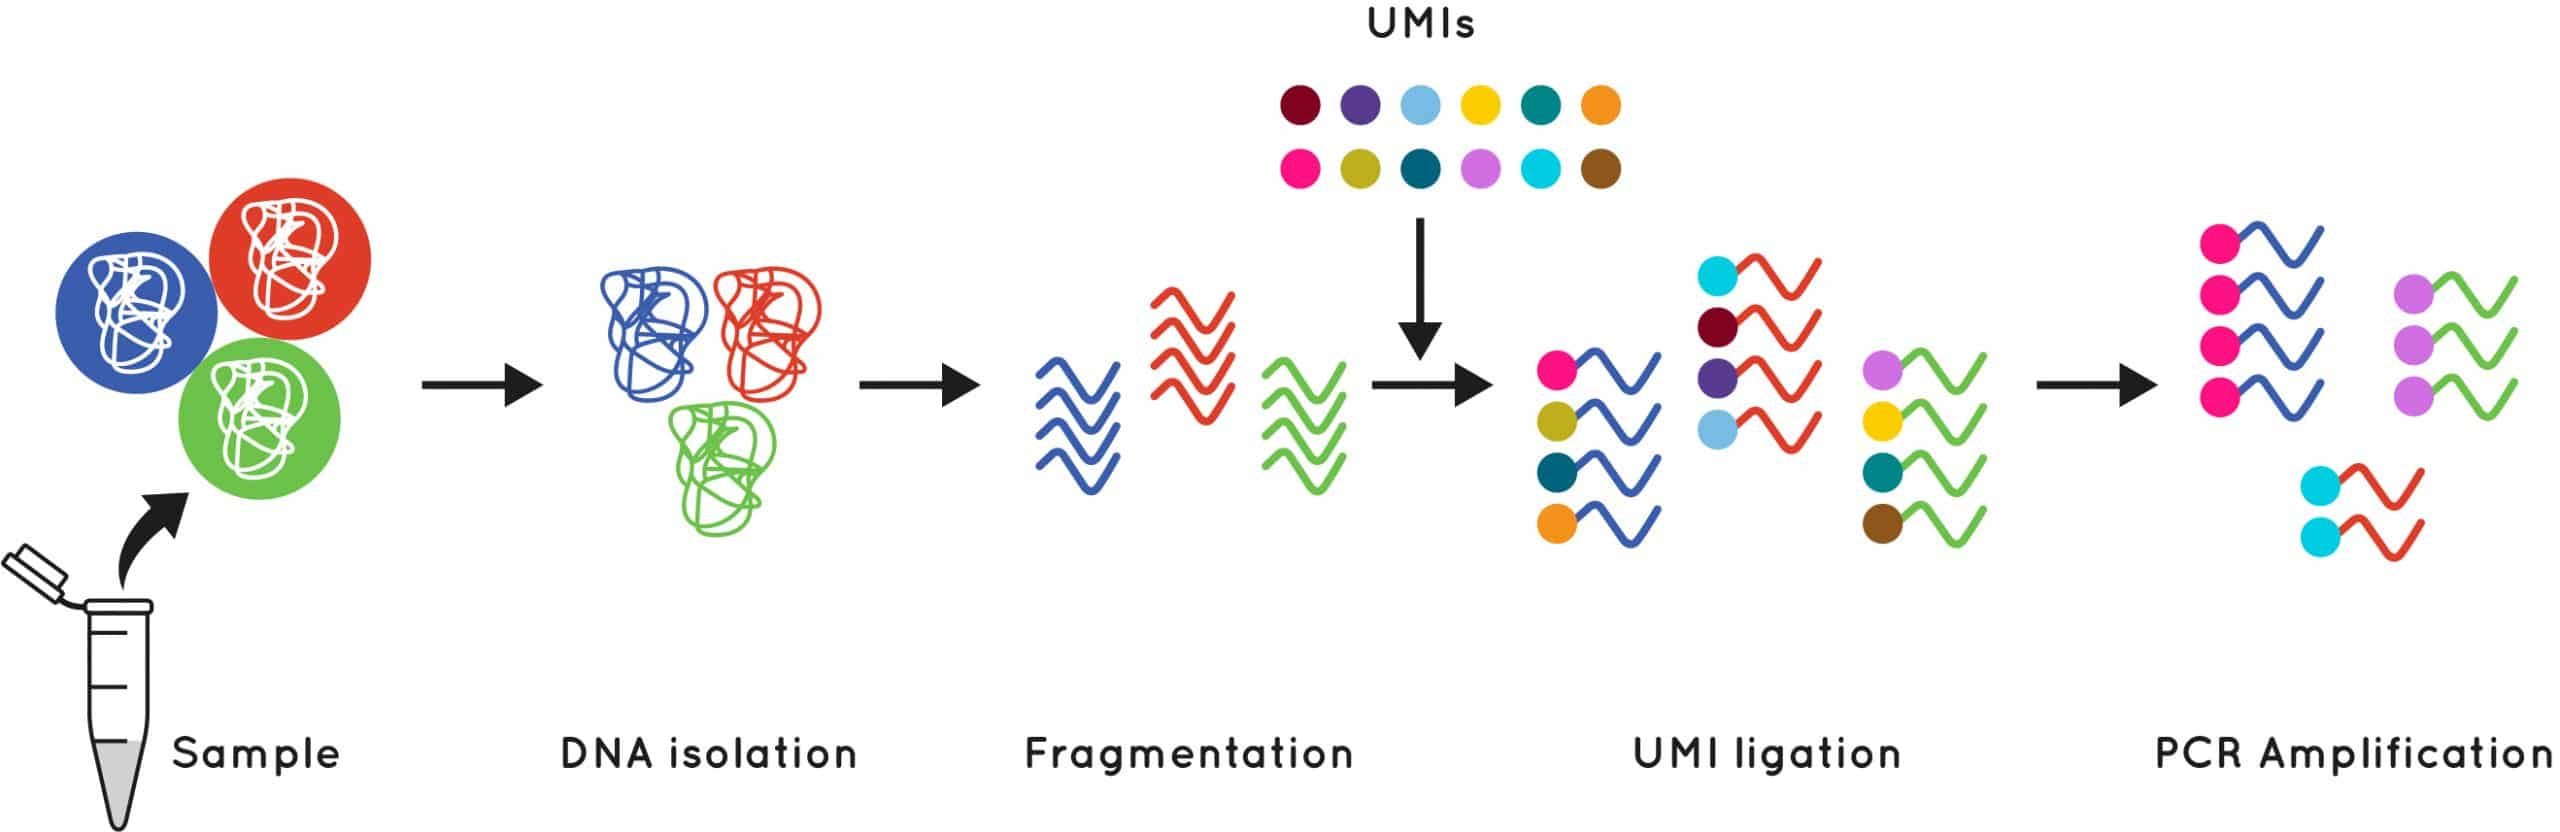 How unique molecular identifiers work